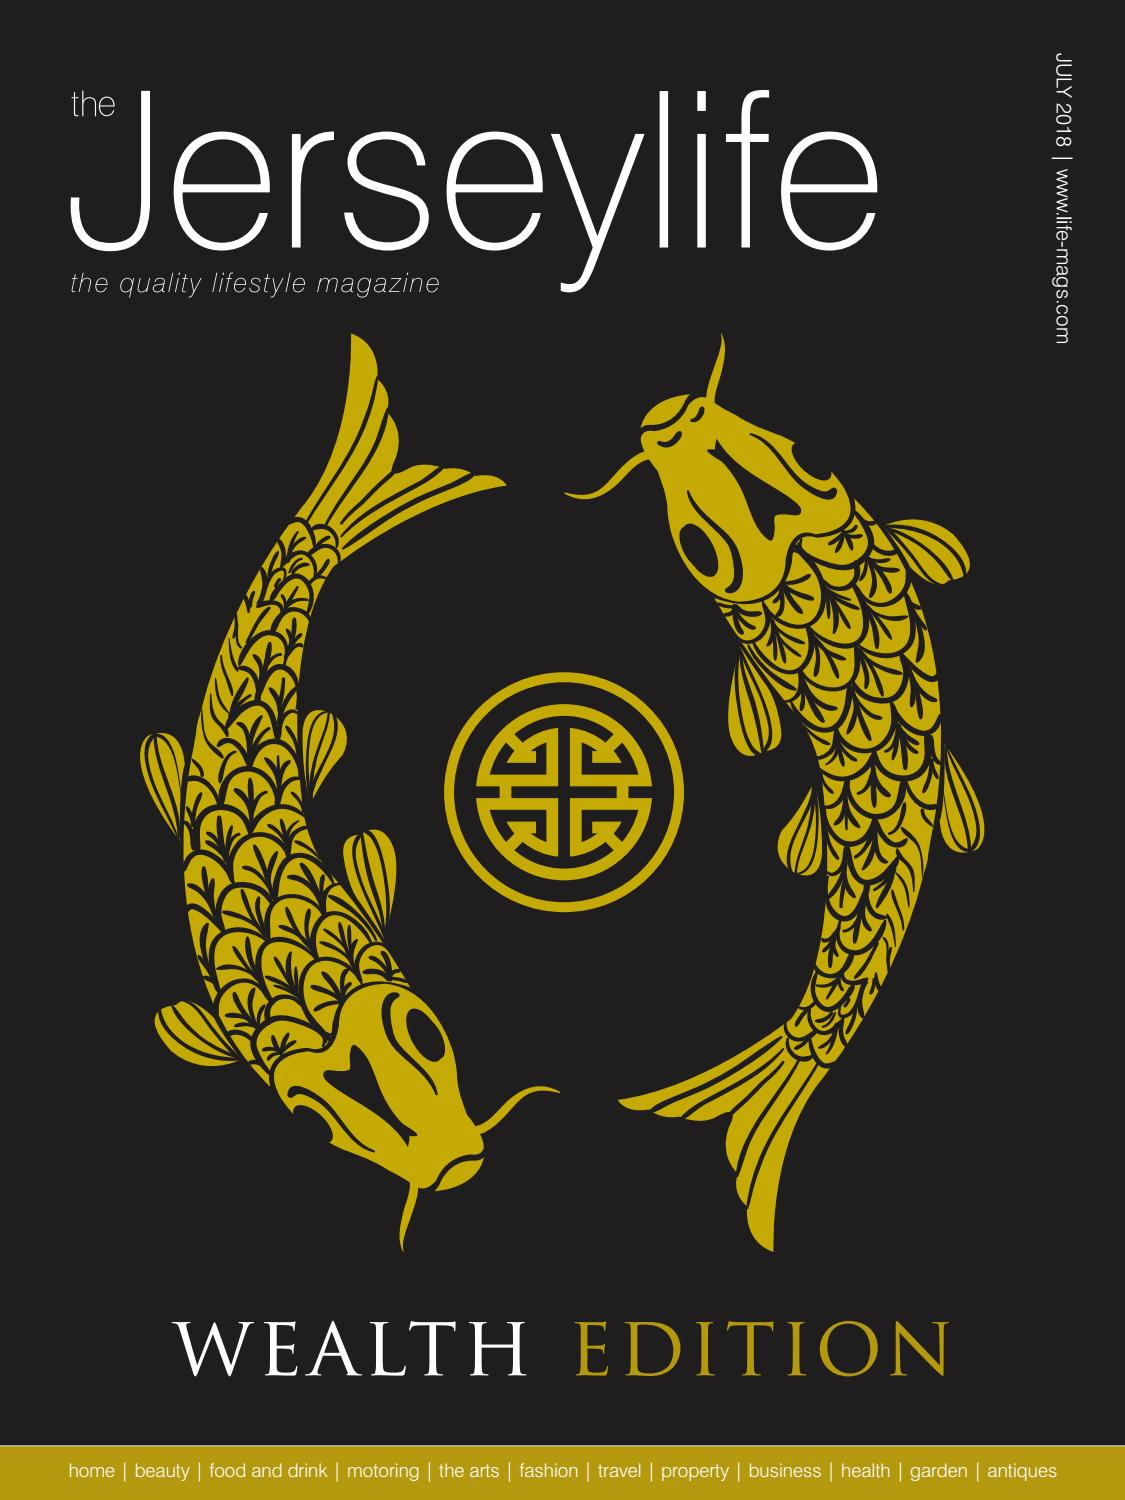 The Jersey Life - WEALTH EDITION by The Jersey Life - issuu